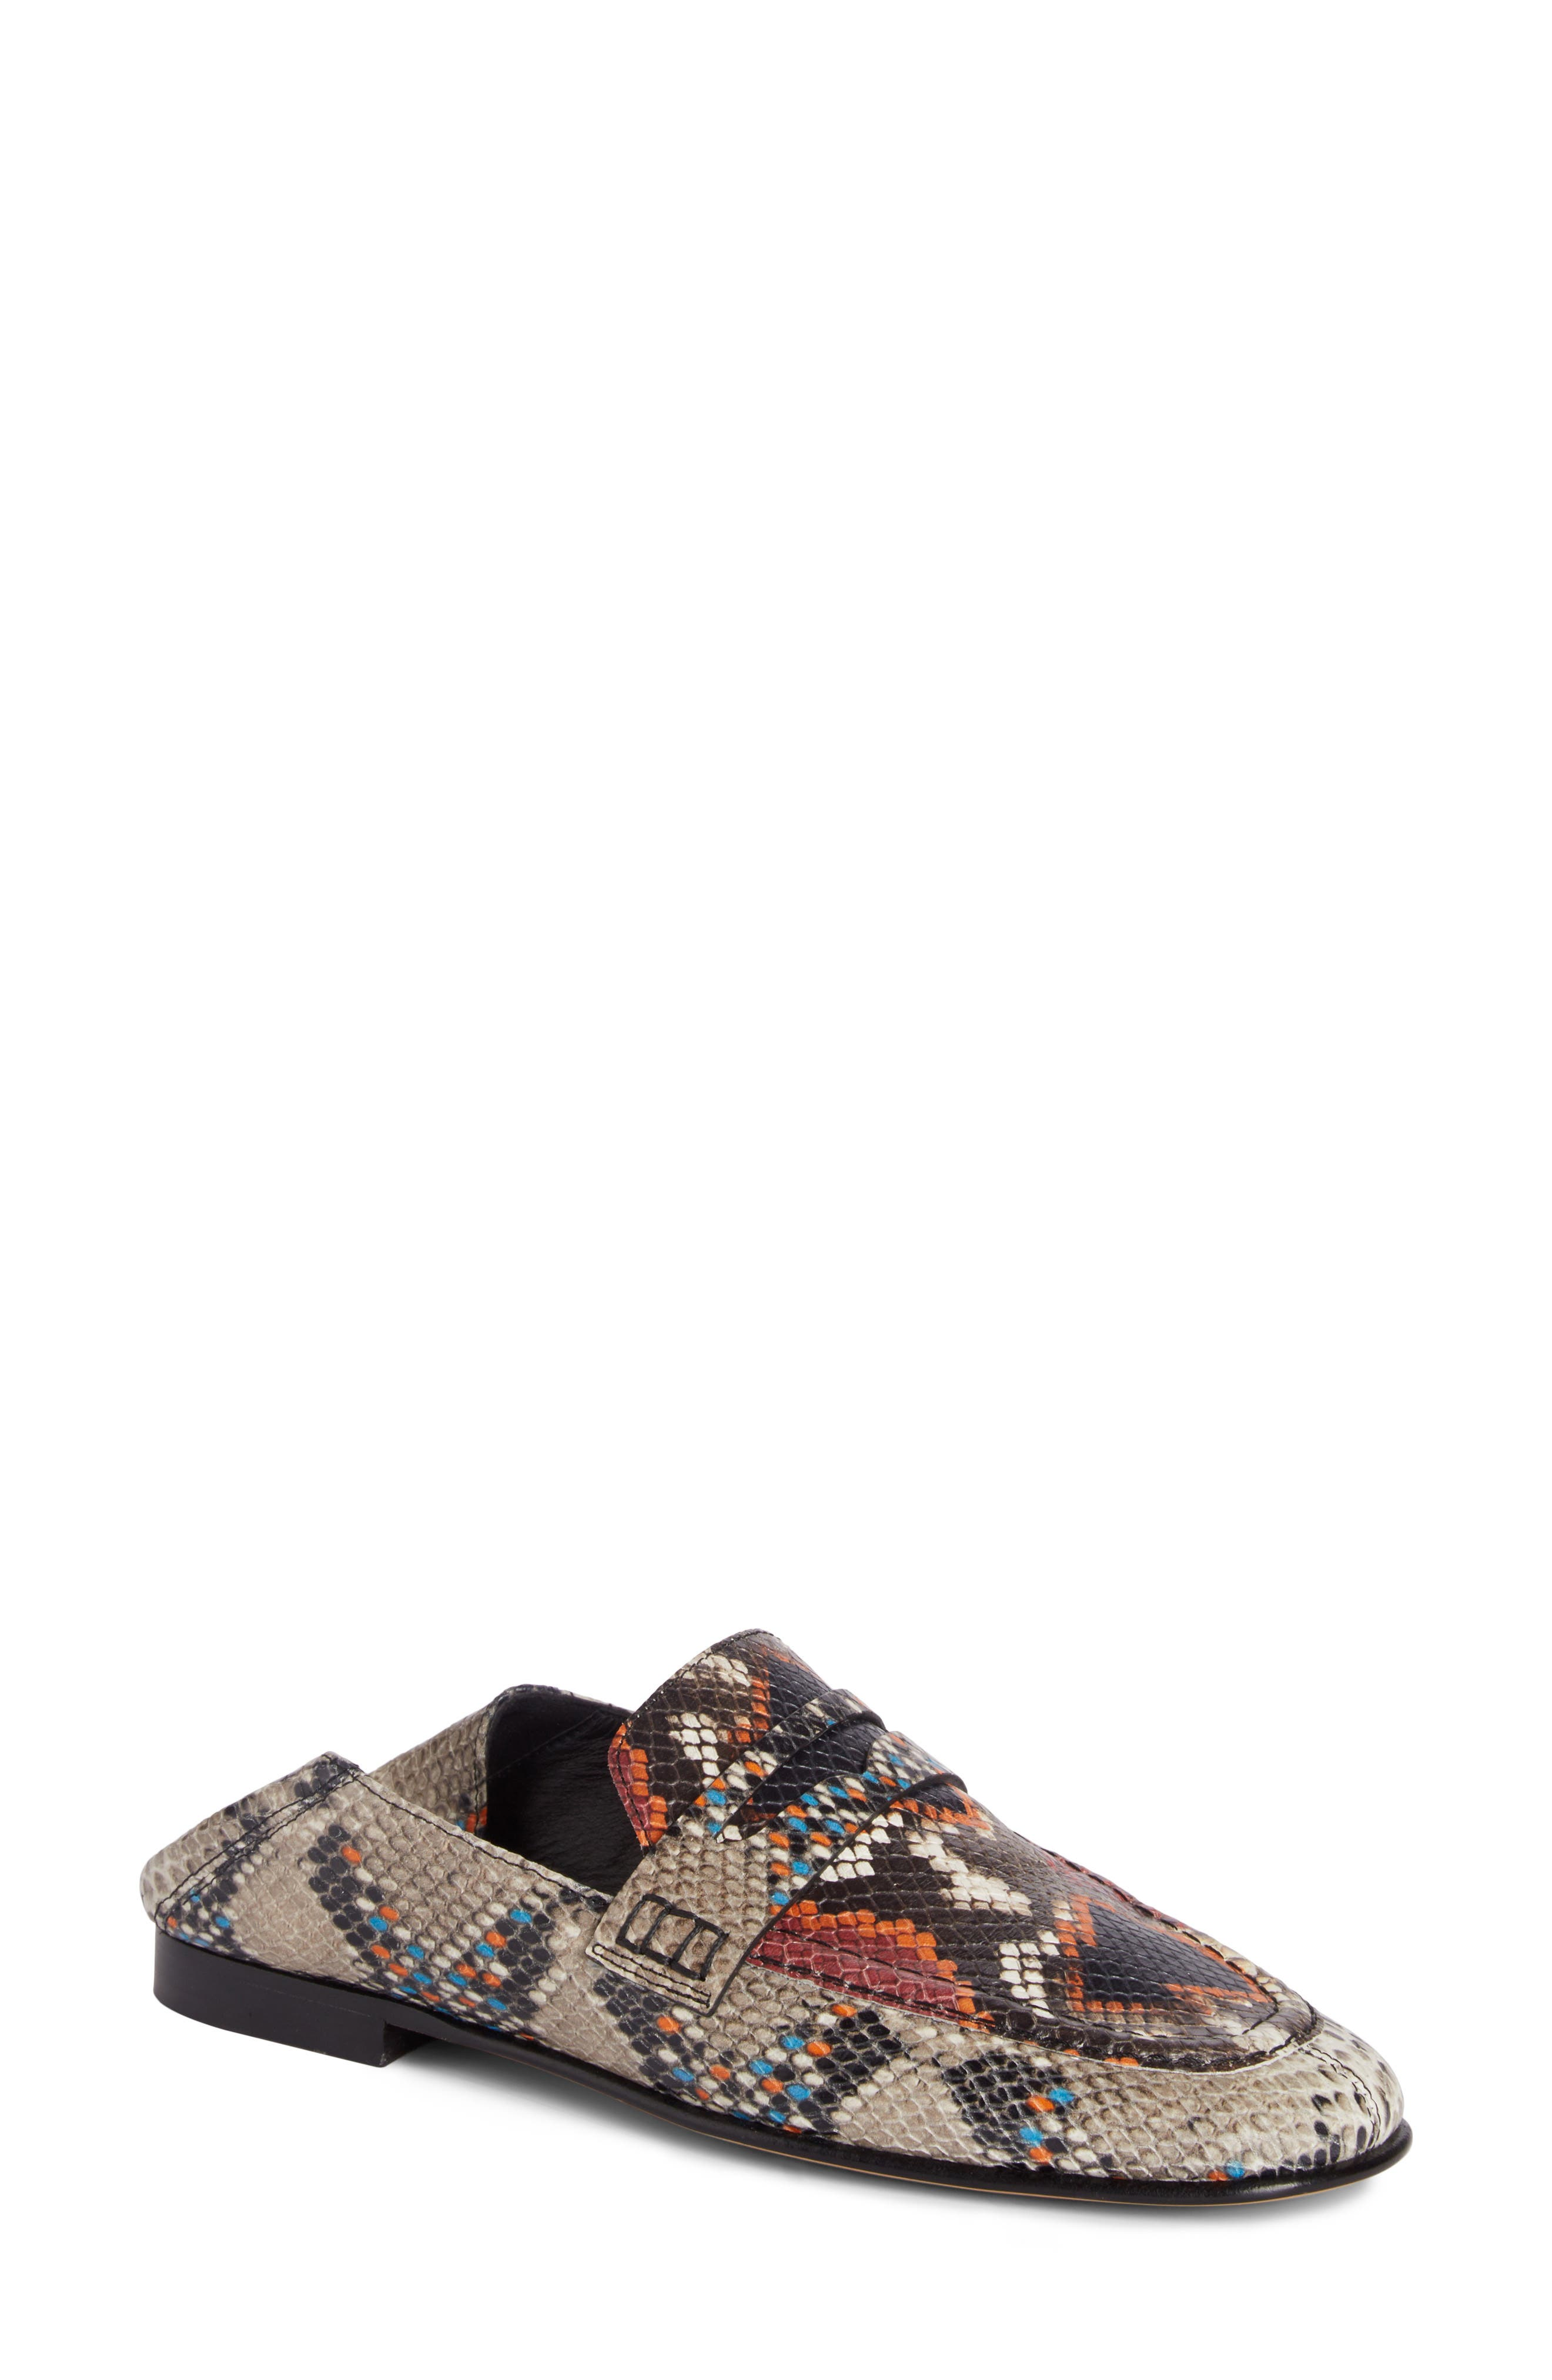 Alternate Image 1 Selected - Isabel Marant Fezzy Snakeskin Embossed Convertible Loafer (Women)